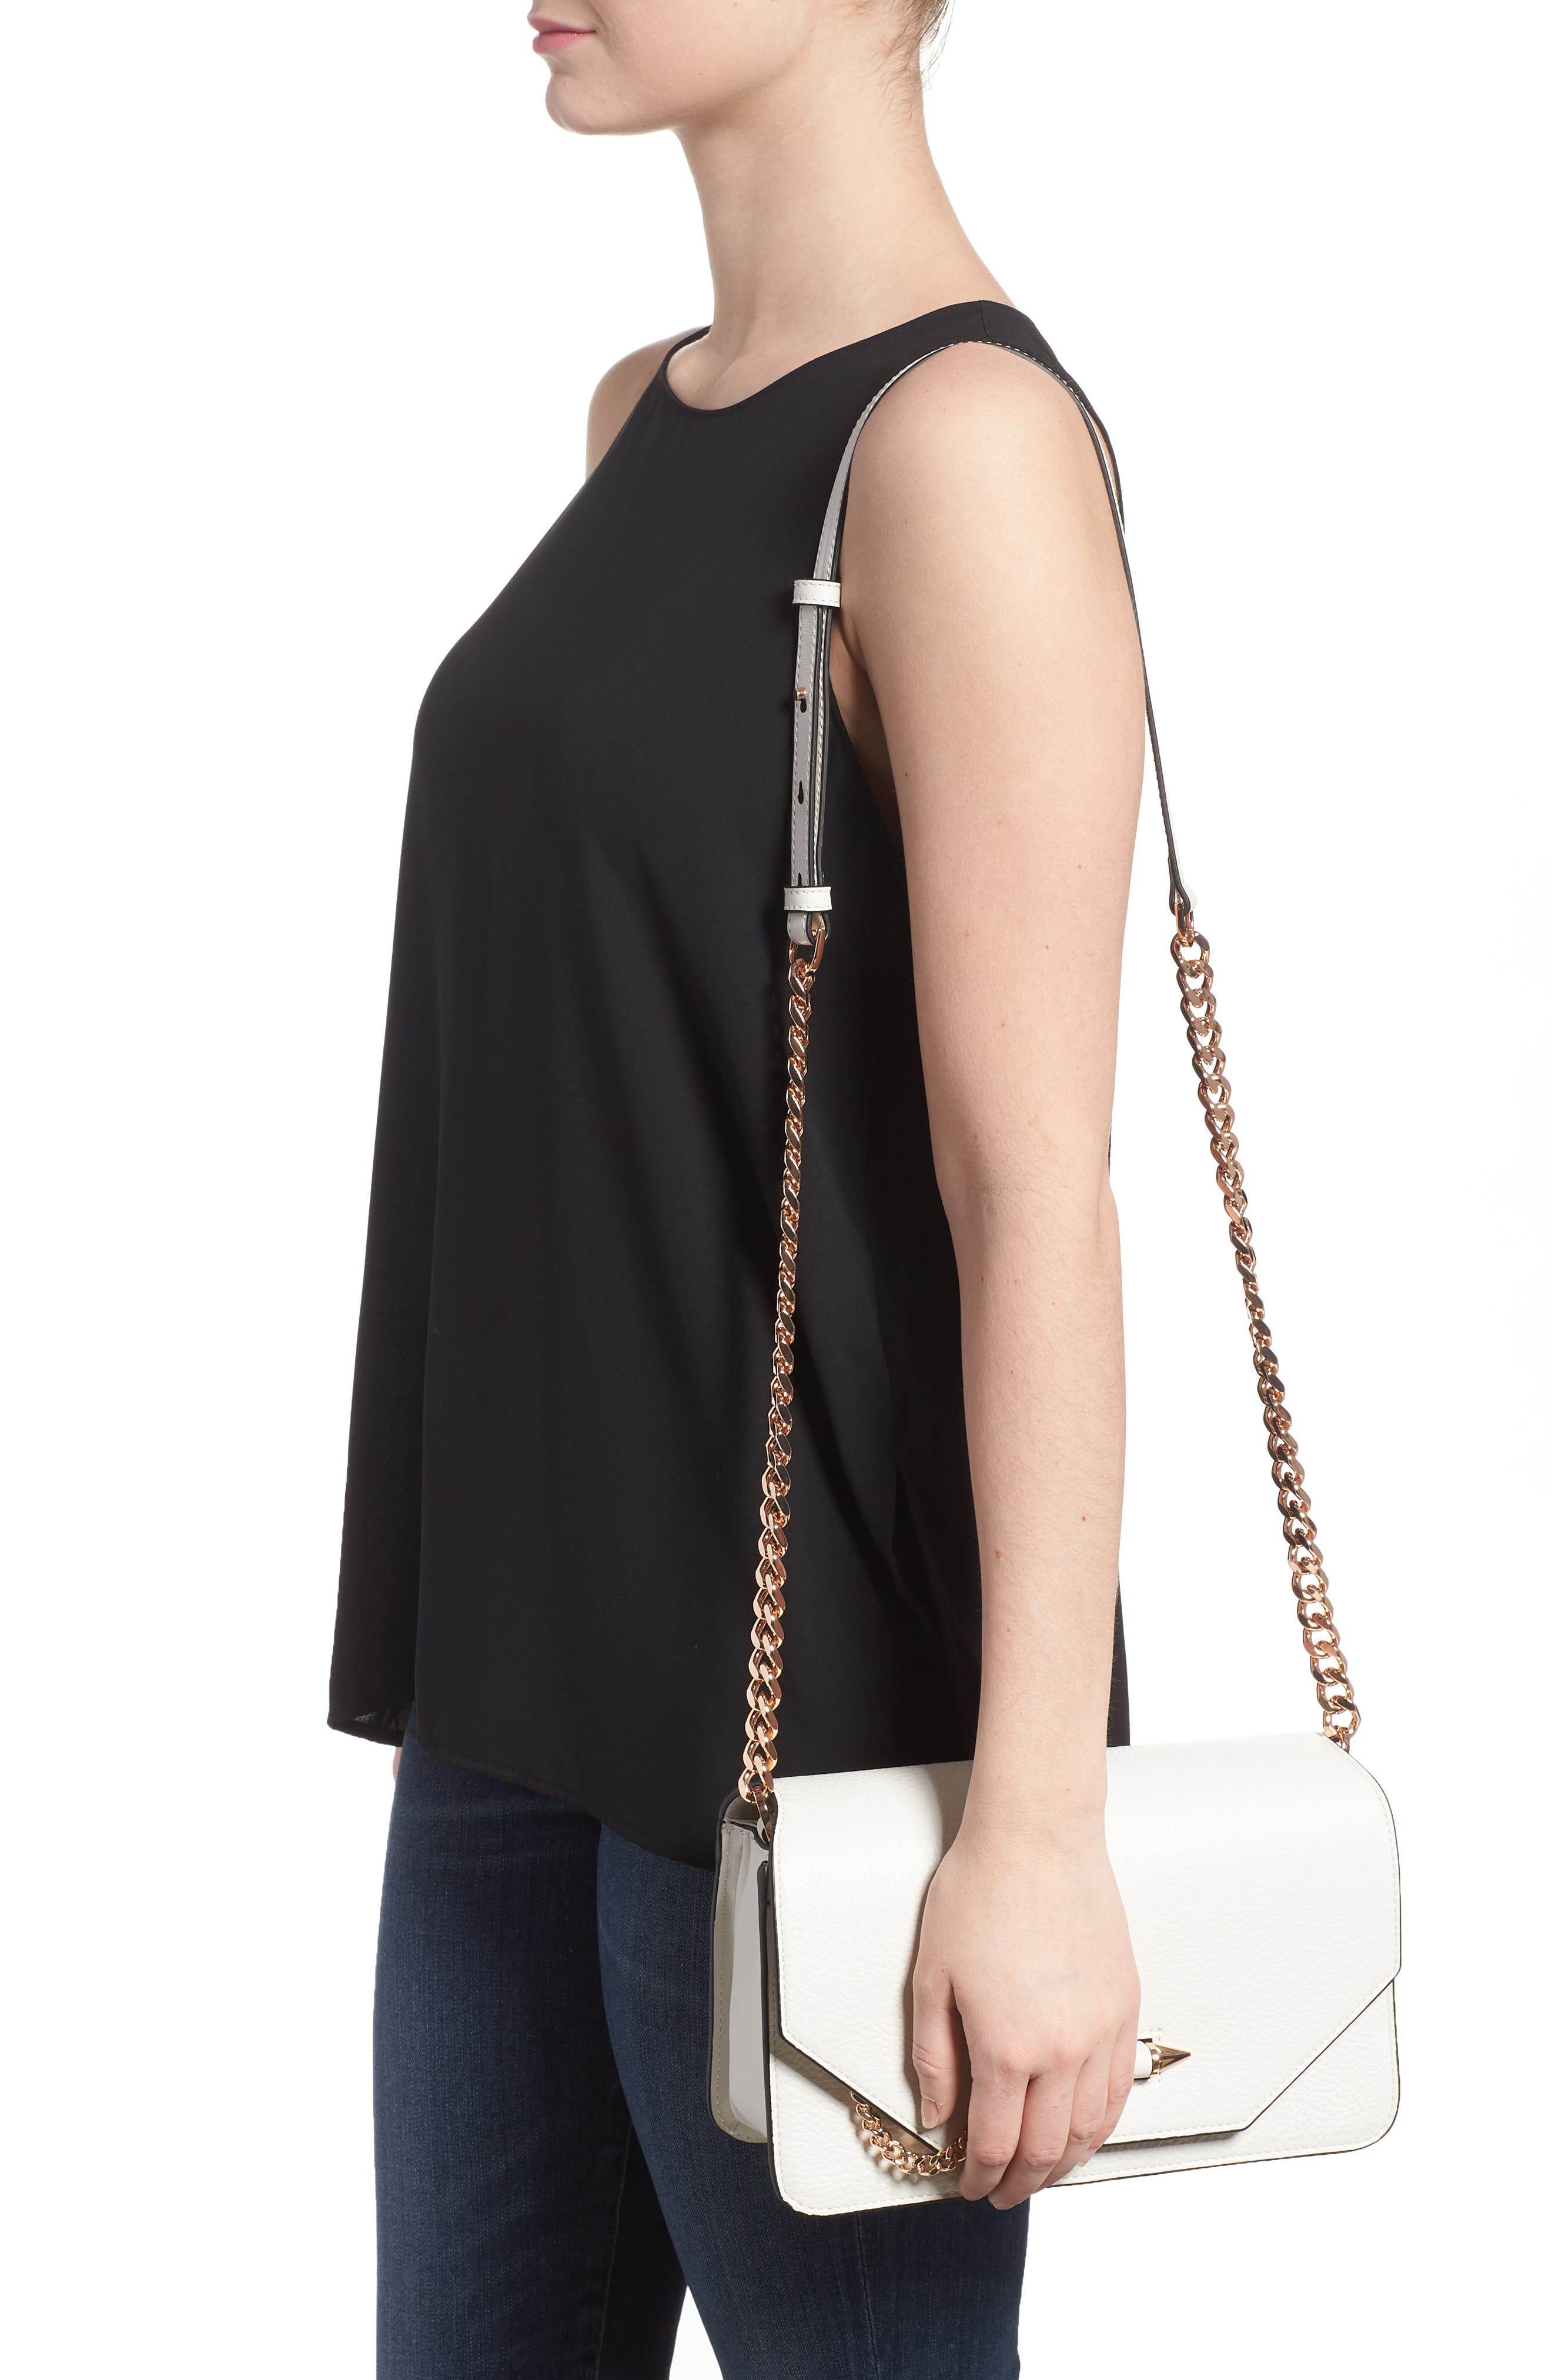 Cortney Nappa Leather Shoulder/Crossbody Bag,                             Alternate thumbnail 2, color,                             WHITE/ ROSE GOLD